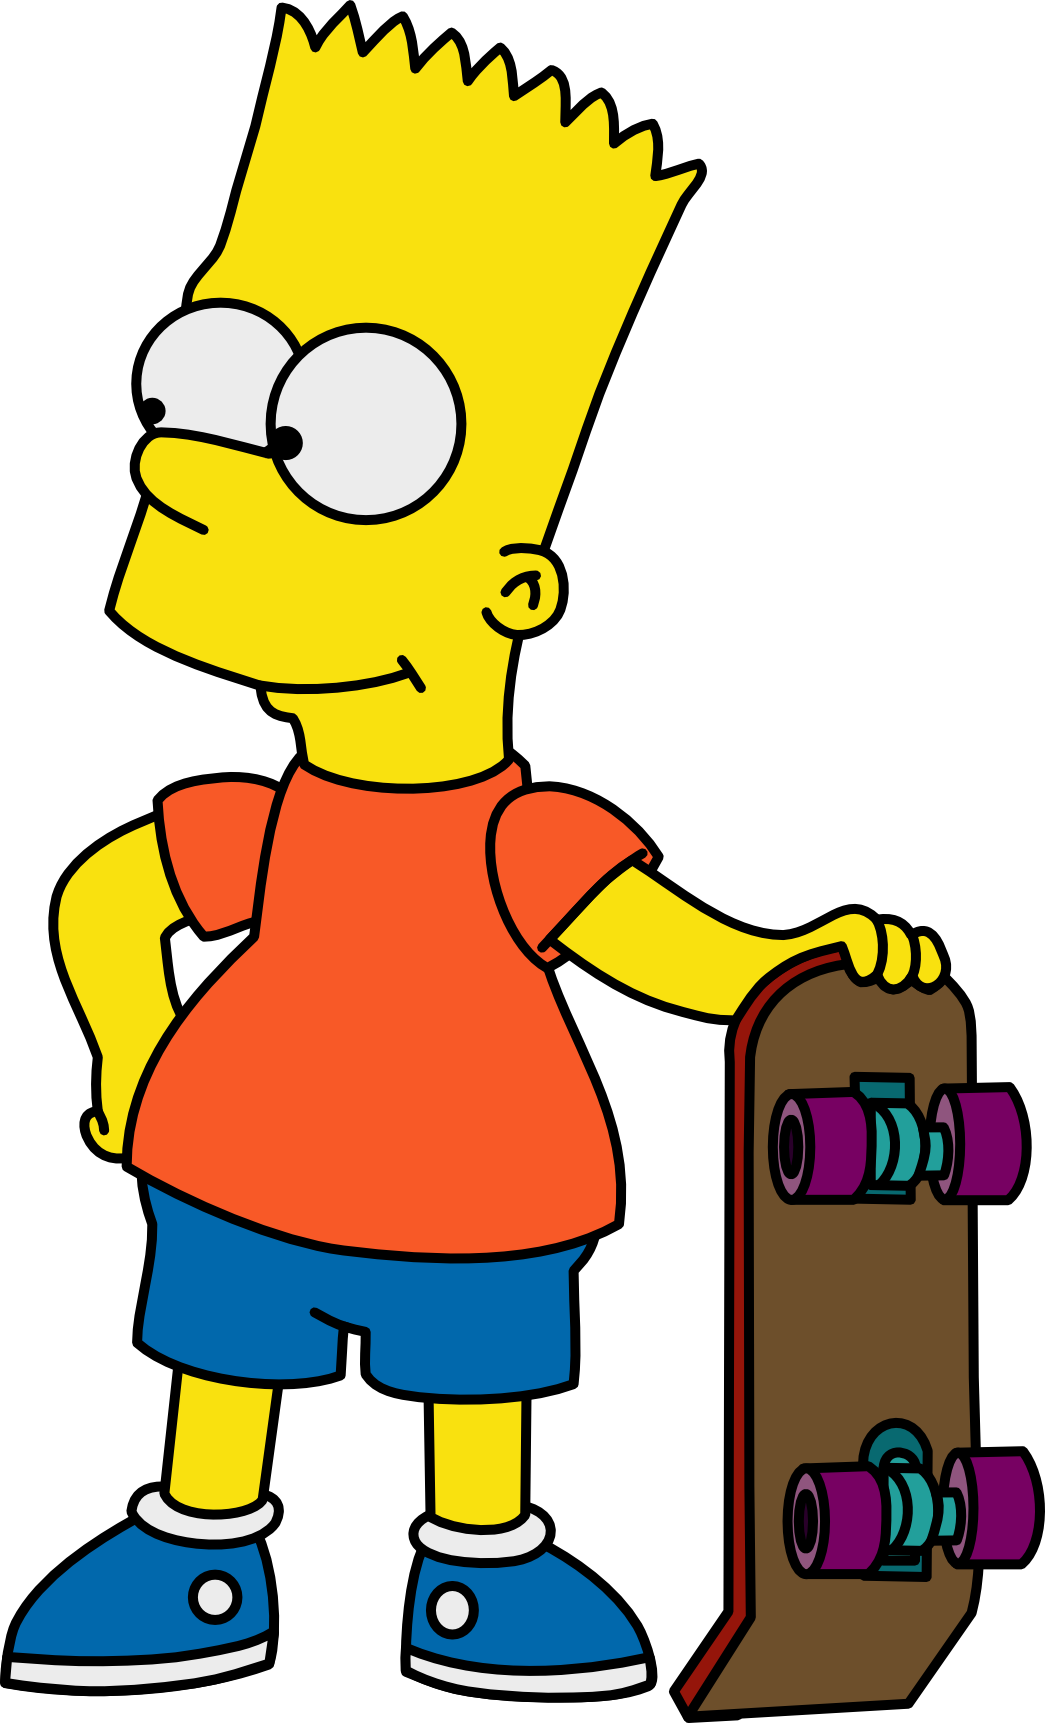 Transparent Background Bart Simpson Png Hd image #39259